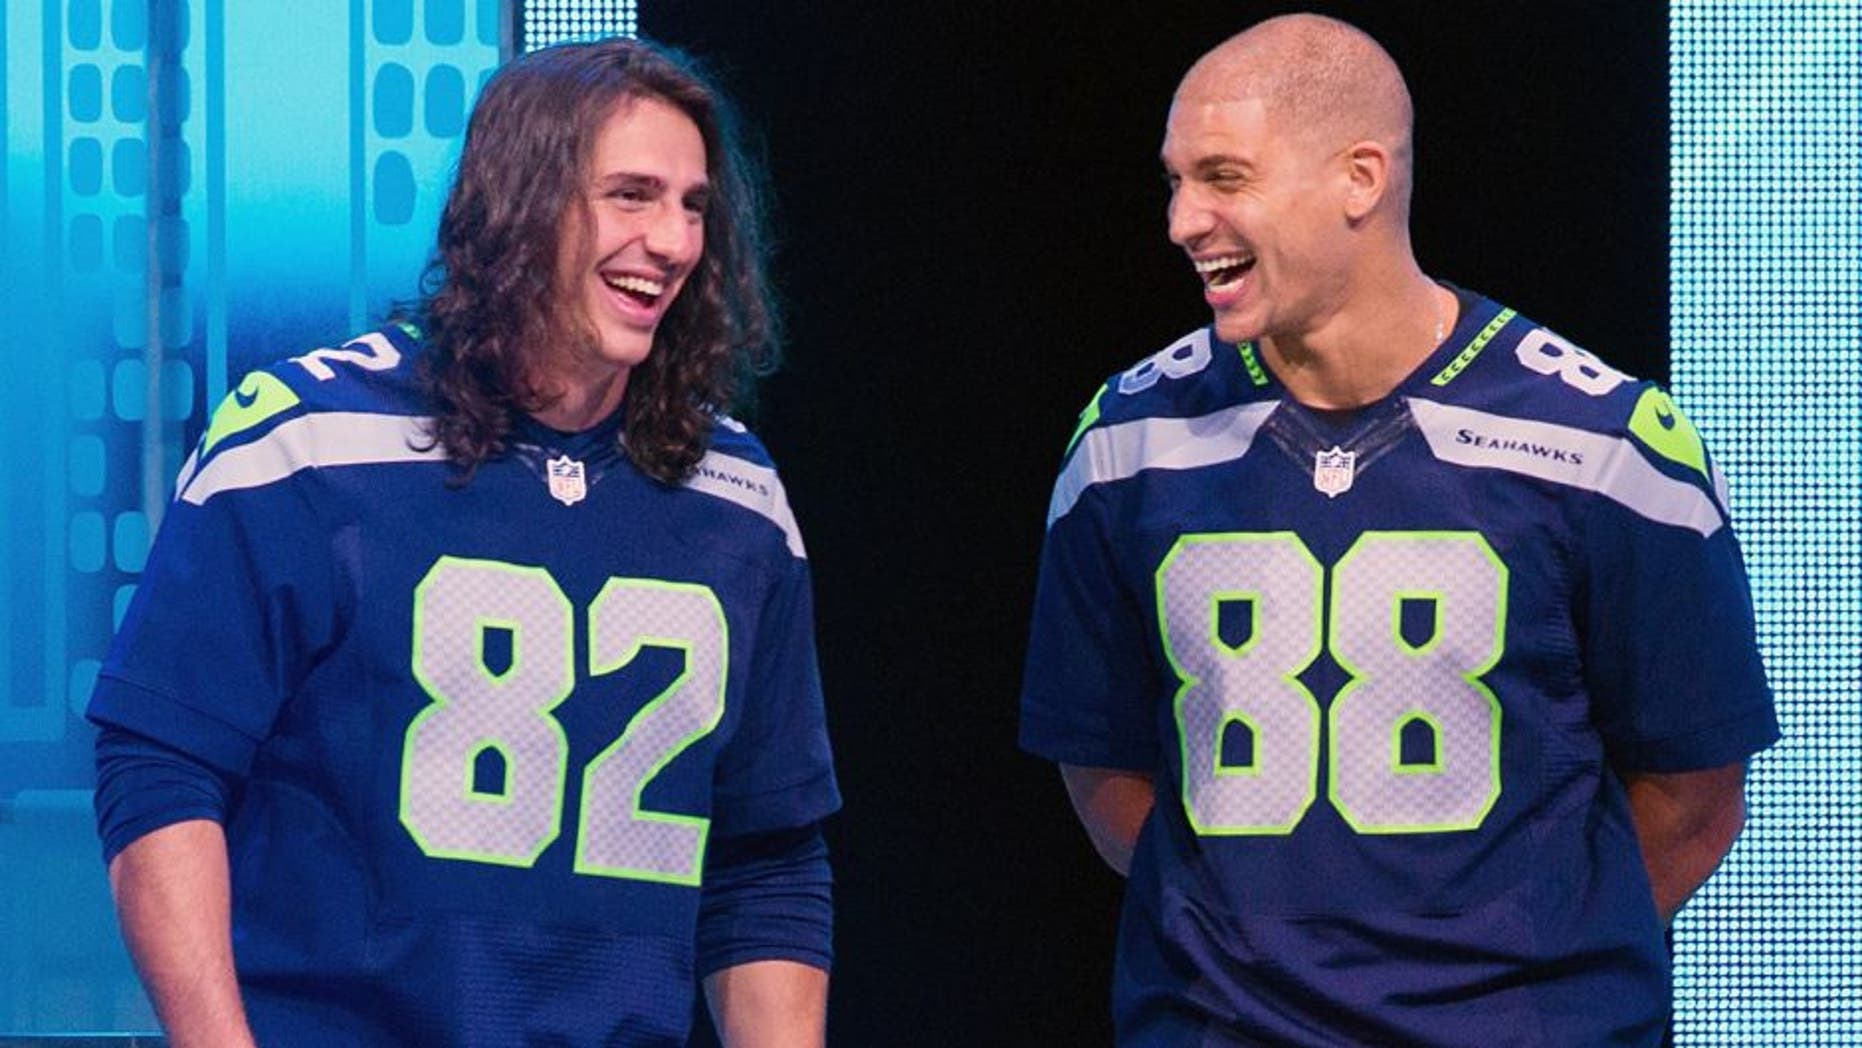 SEATTLE, WA - APRIL 23: (L-R) Seattle Seahwaks players Bobby Wagner, Luke Willson, Jimmy Graham speak on stage during We Day at KeyArena on April 23, 2015 in Seattle, Washington. (Photo by Mat Hayward/Getty Images)